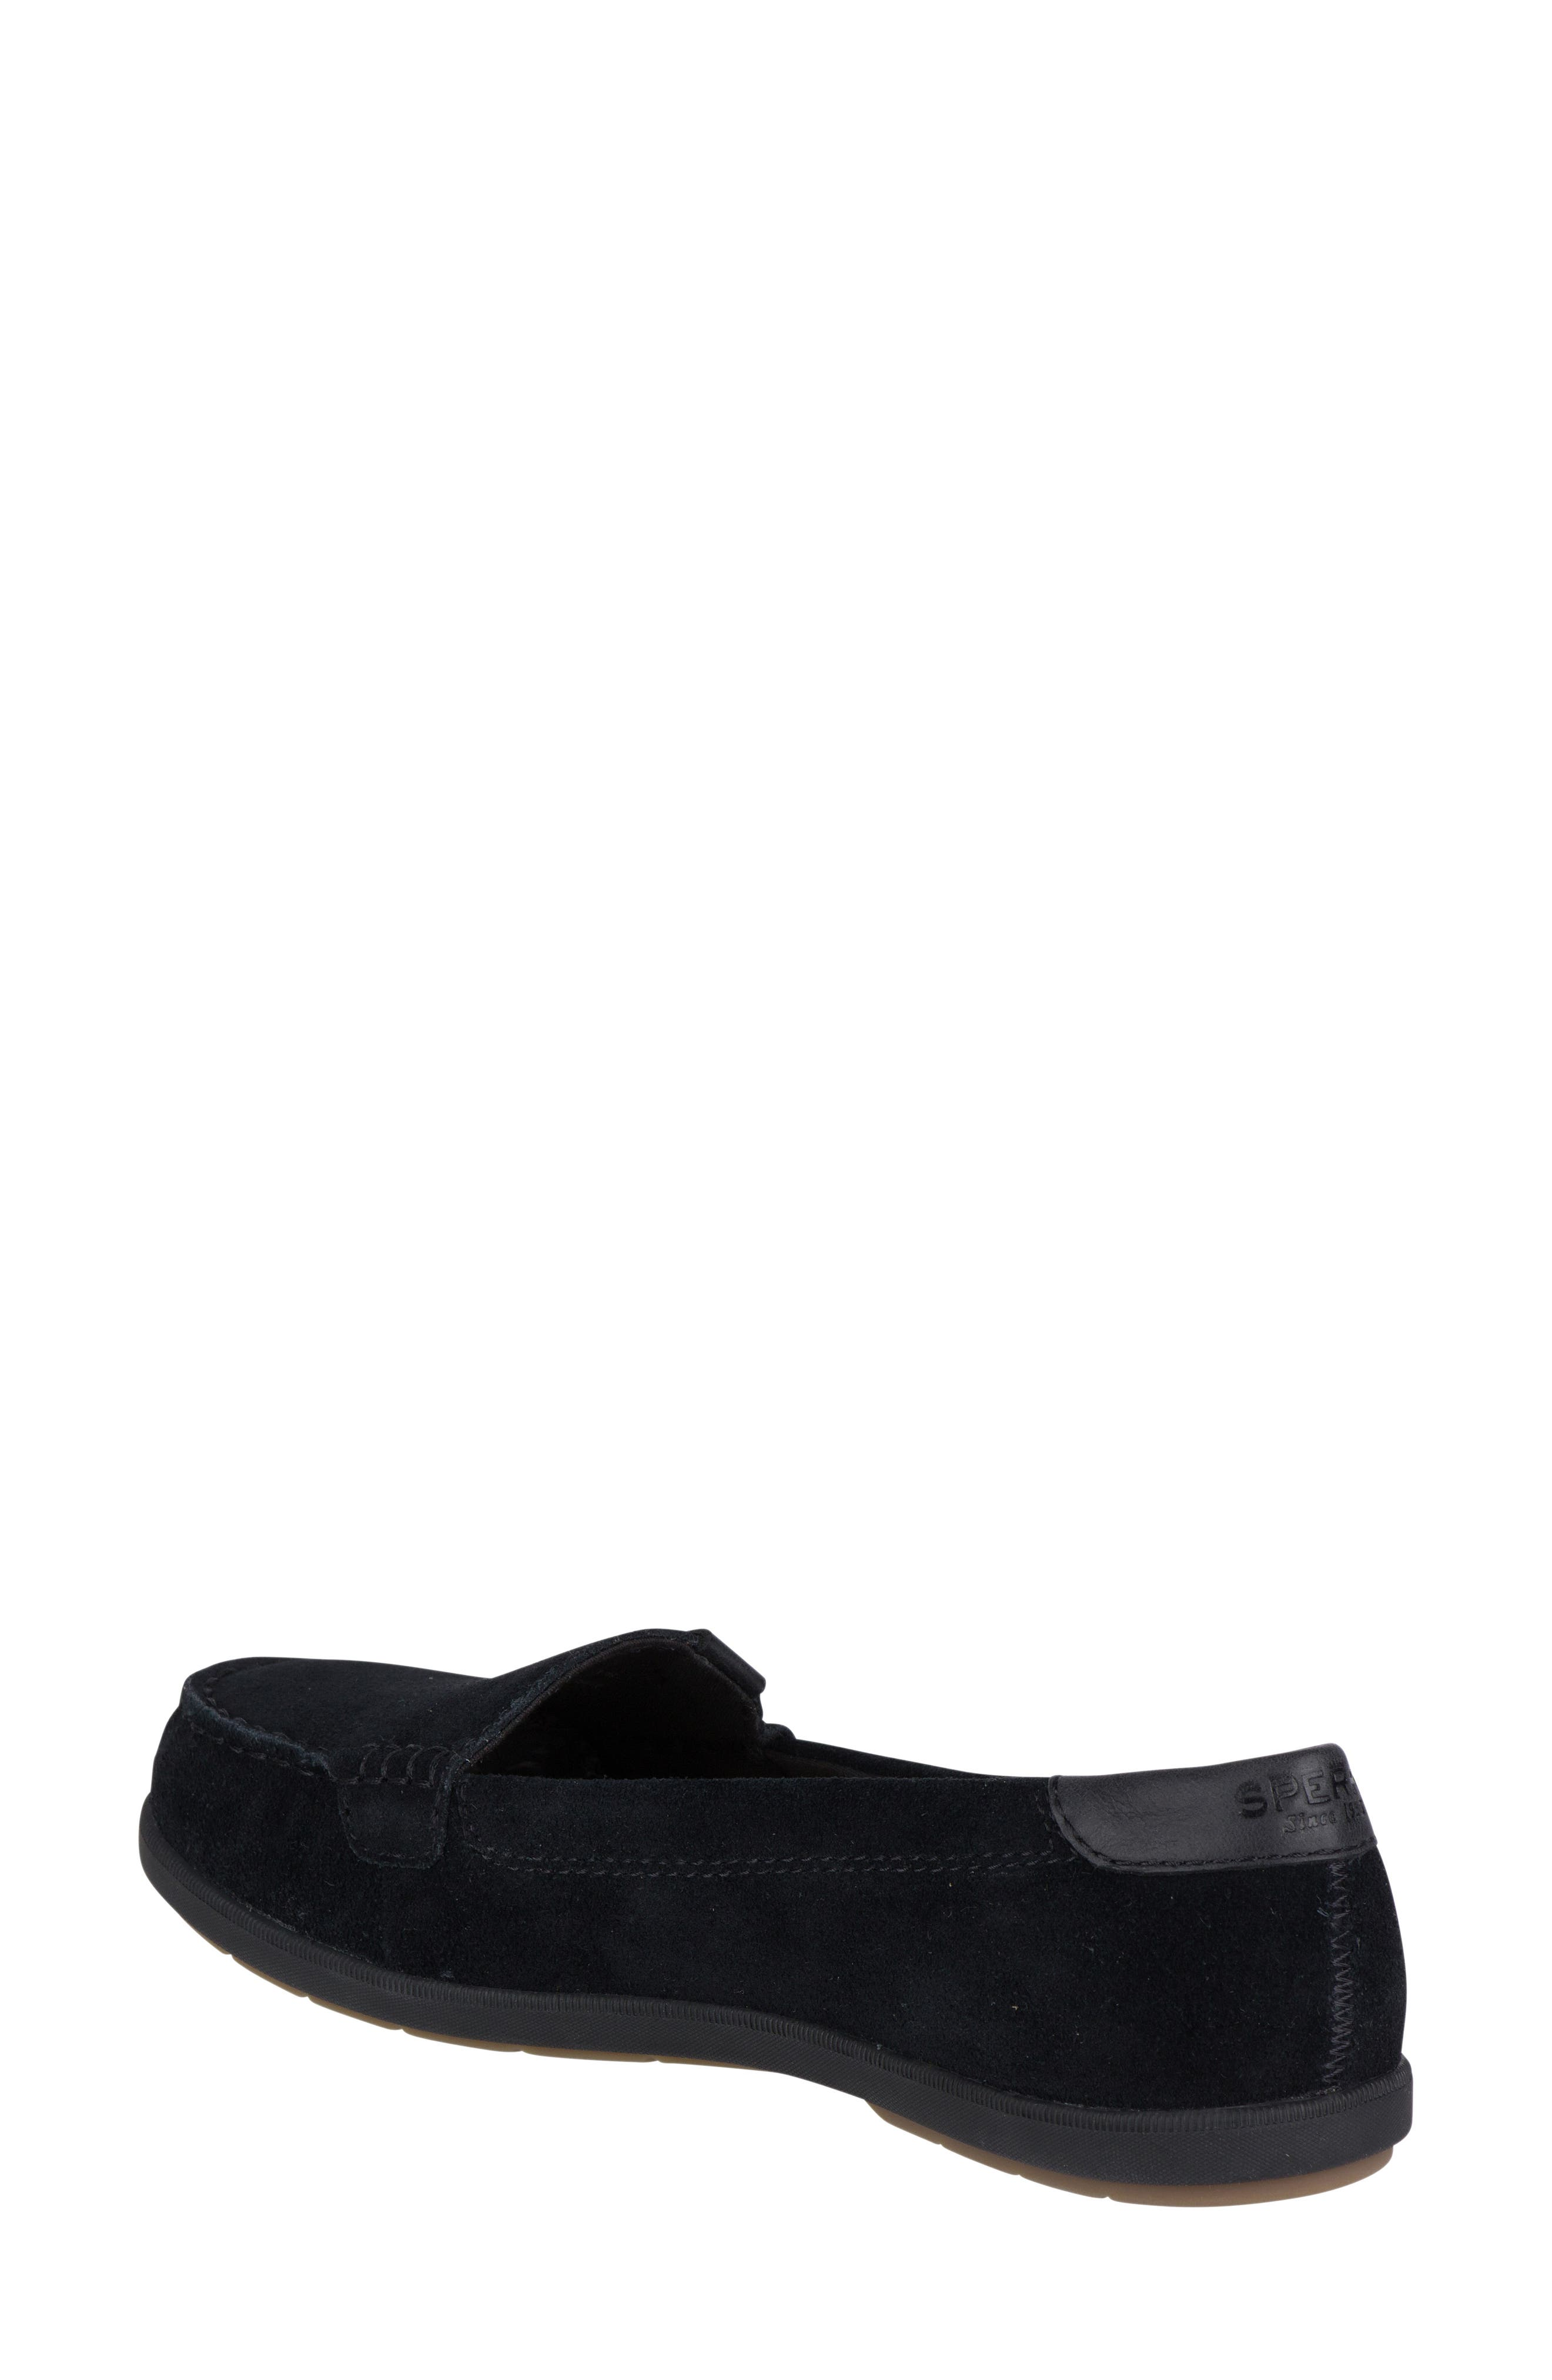 Coil Mia Loafer,                             Alternate thumbnail 6, color,